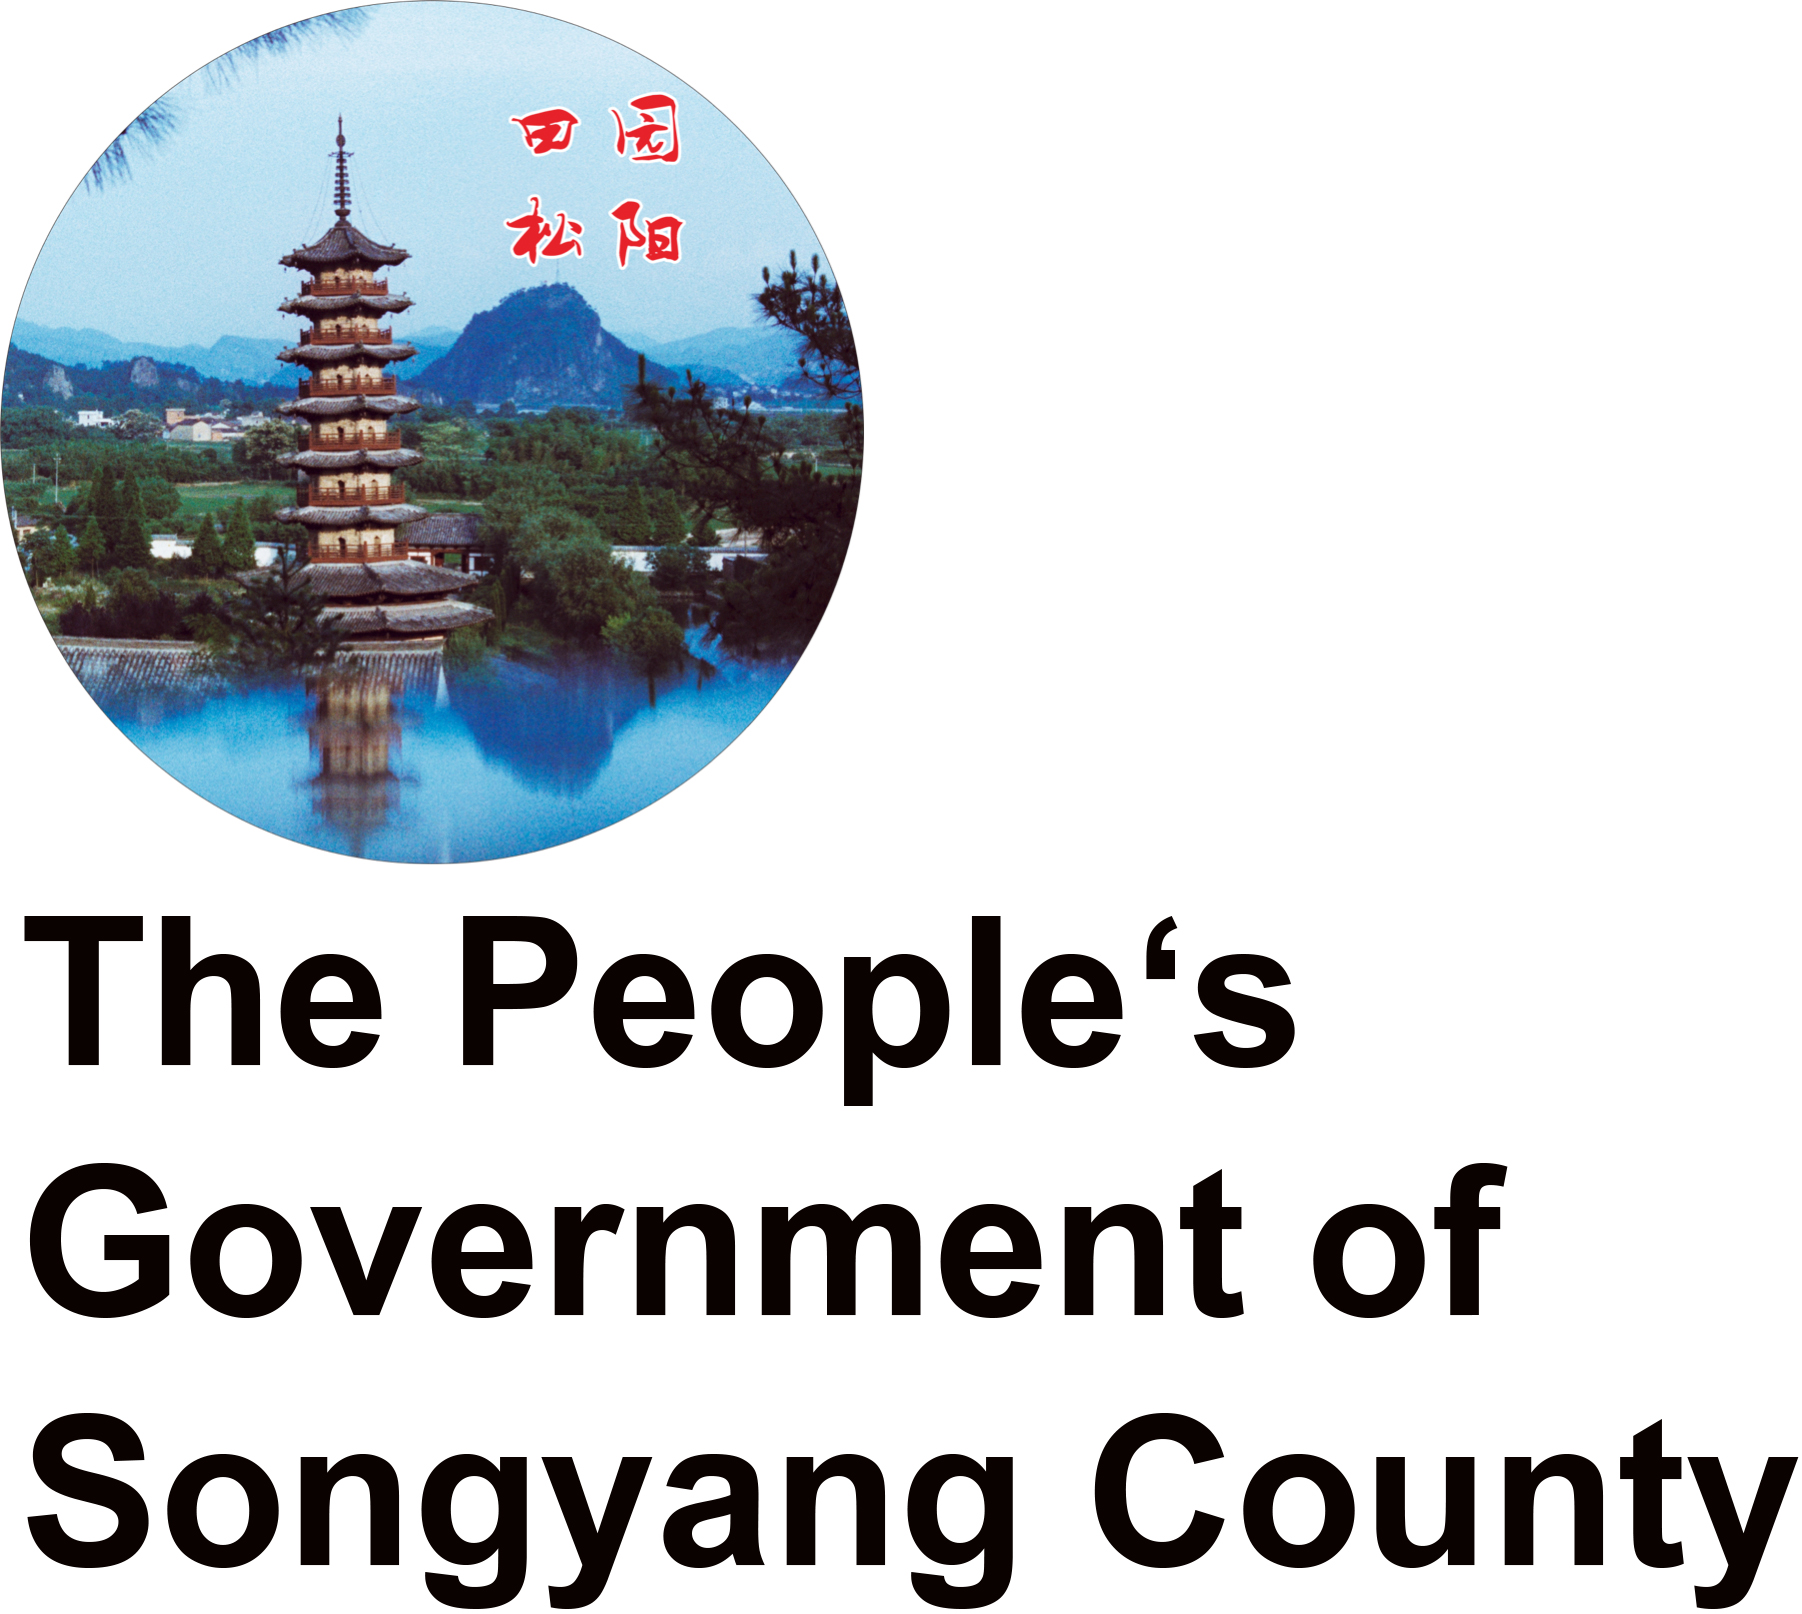 The People's Government of Songyang County